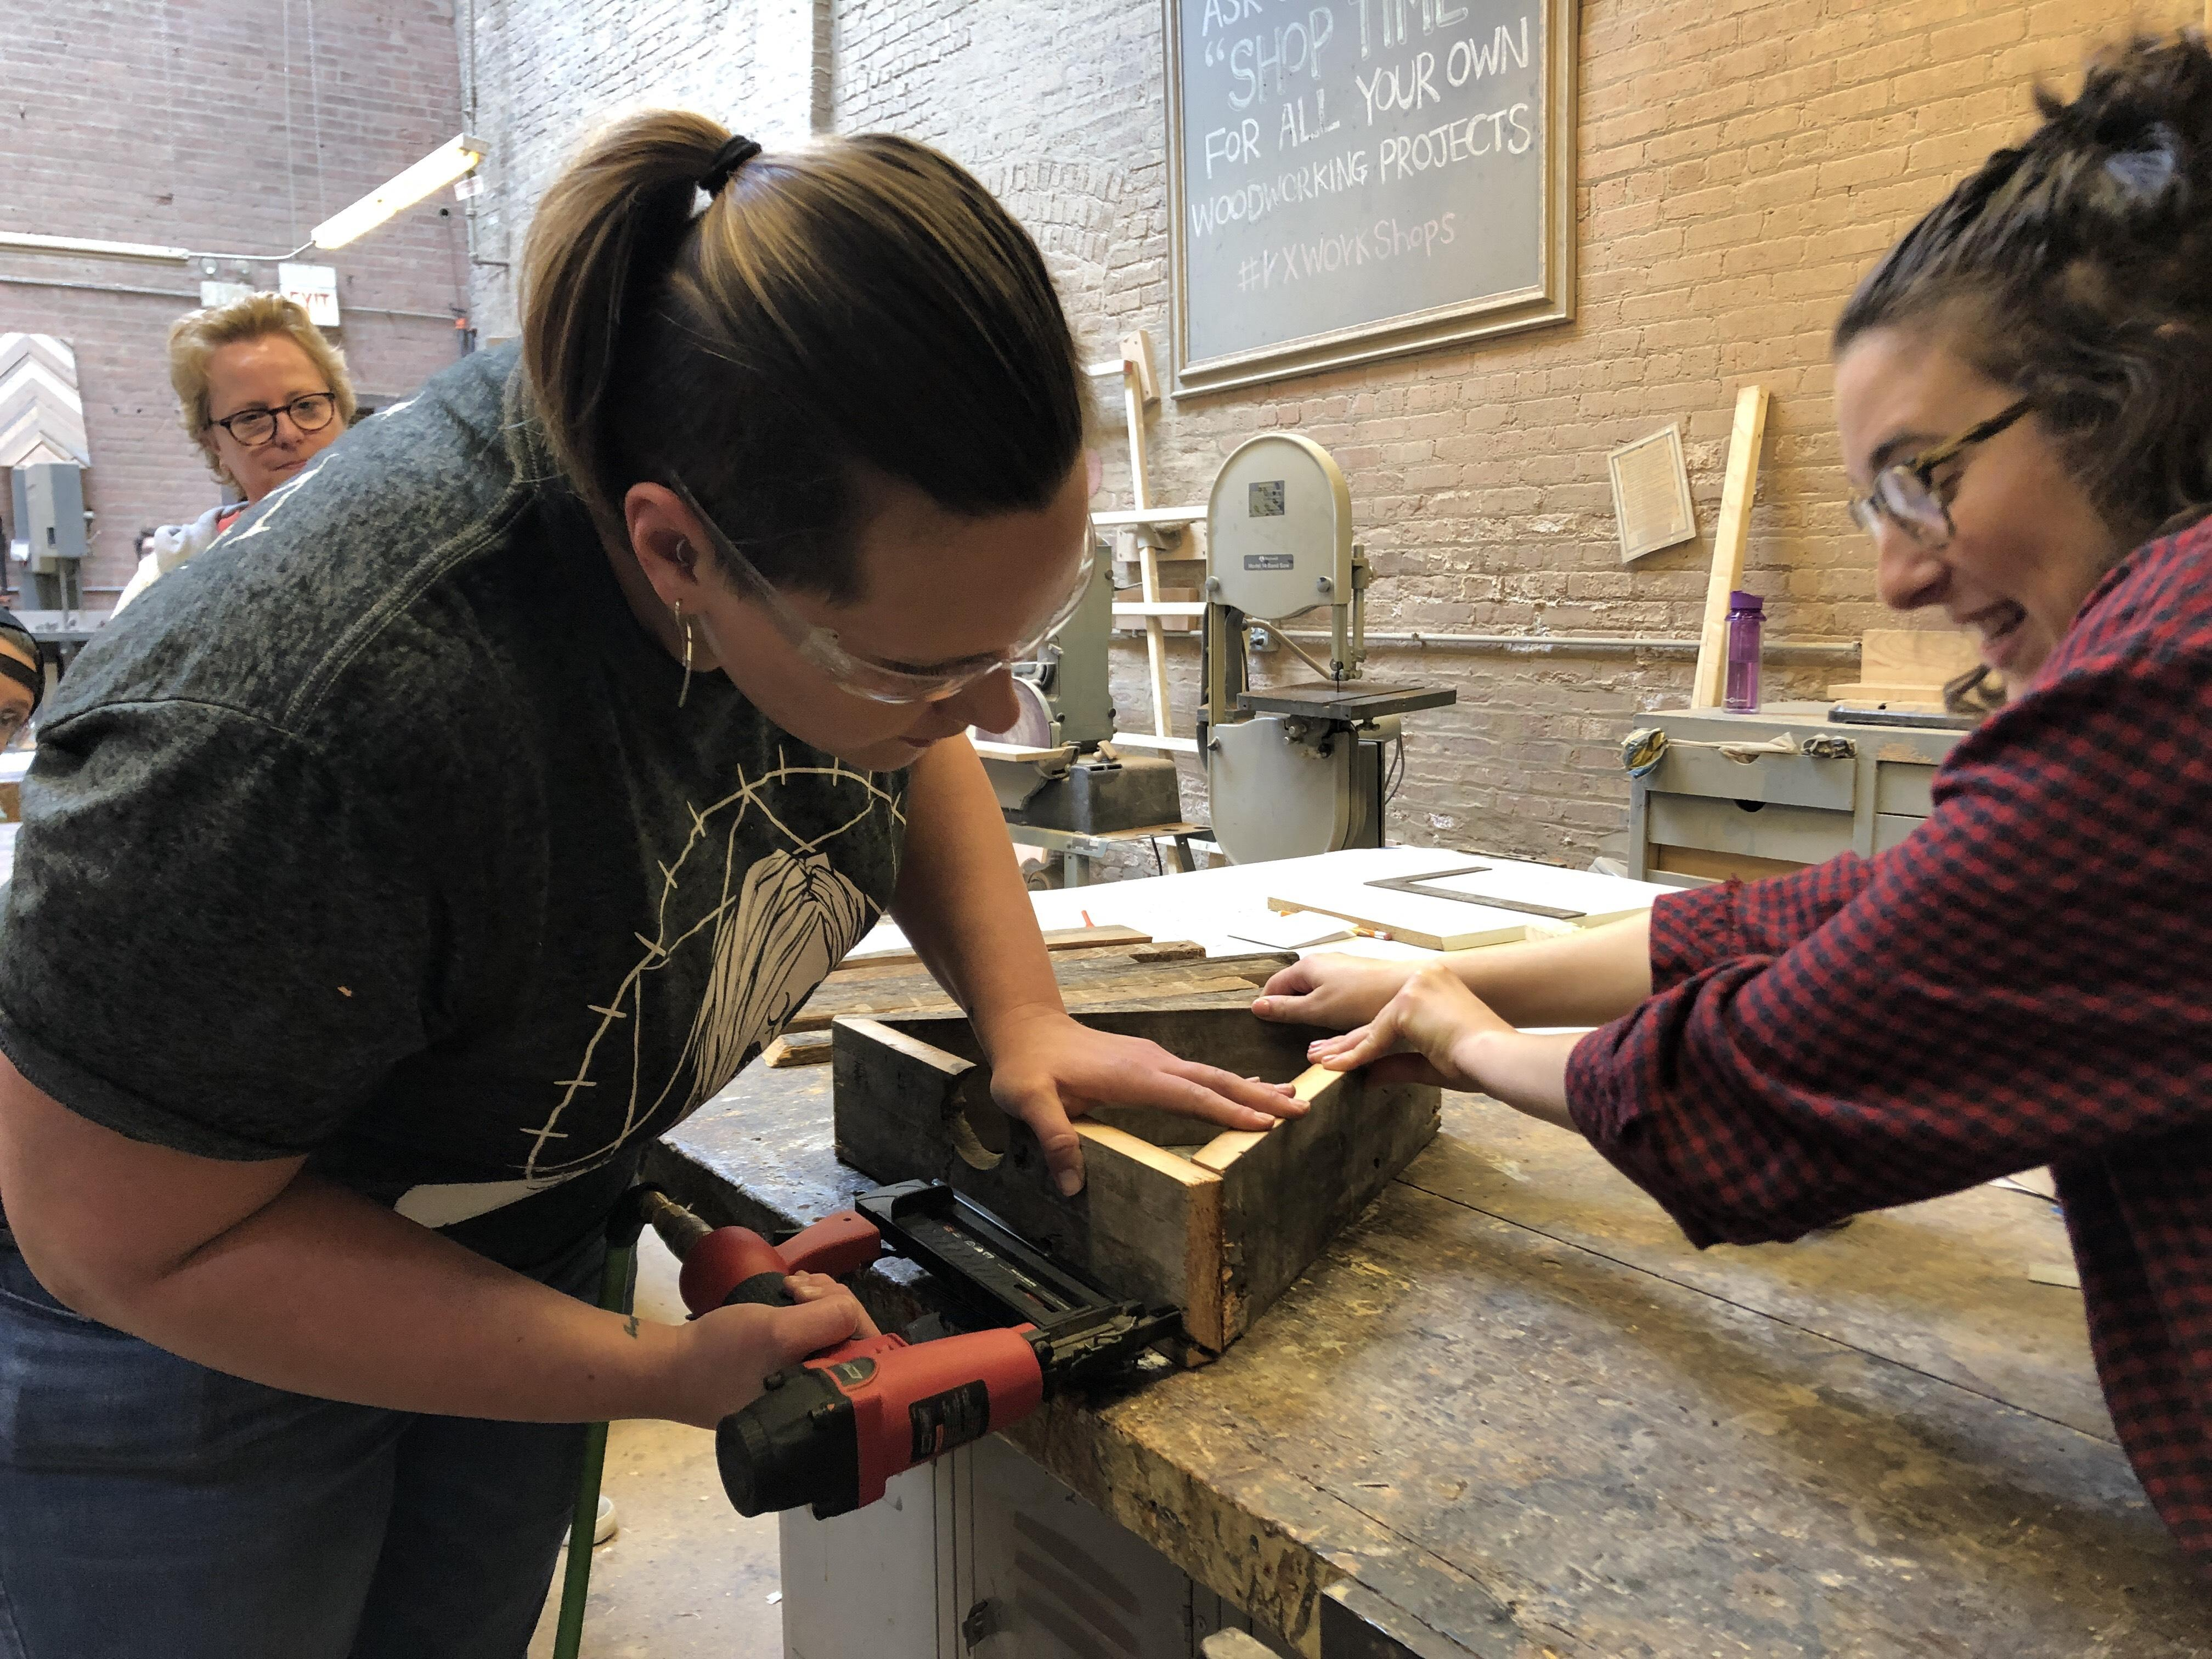 Dykes With Drills In Chicago An Introduction To Tools Workshop 7 Mar 2020